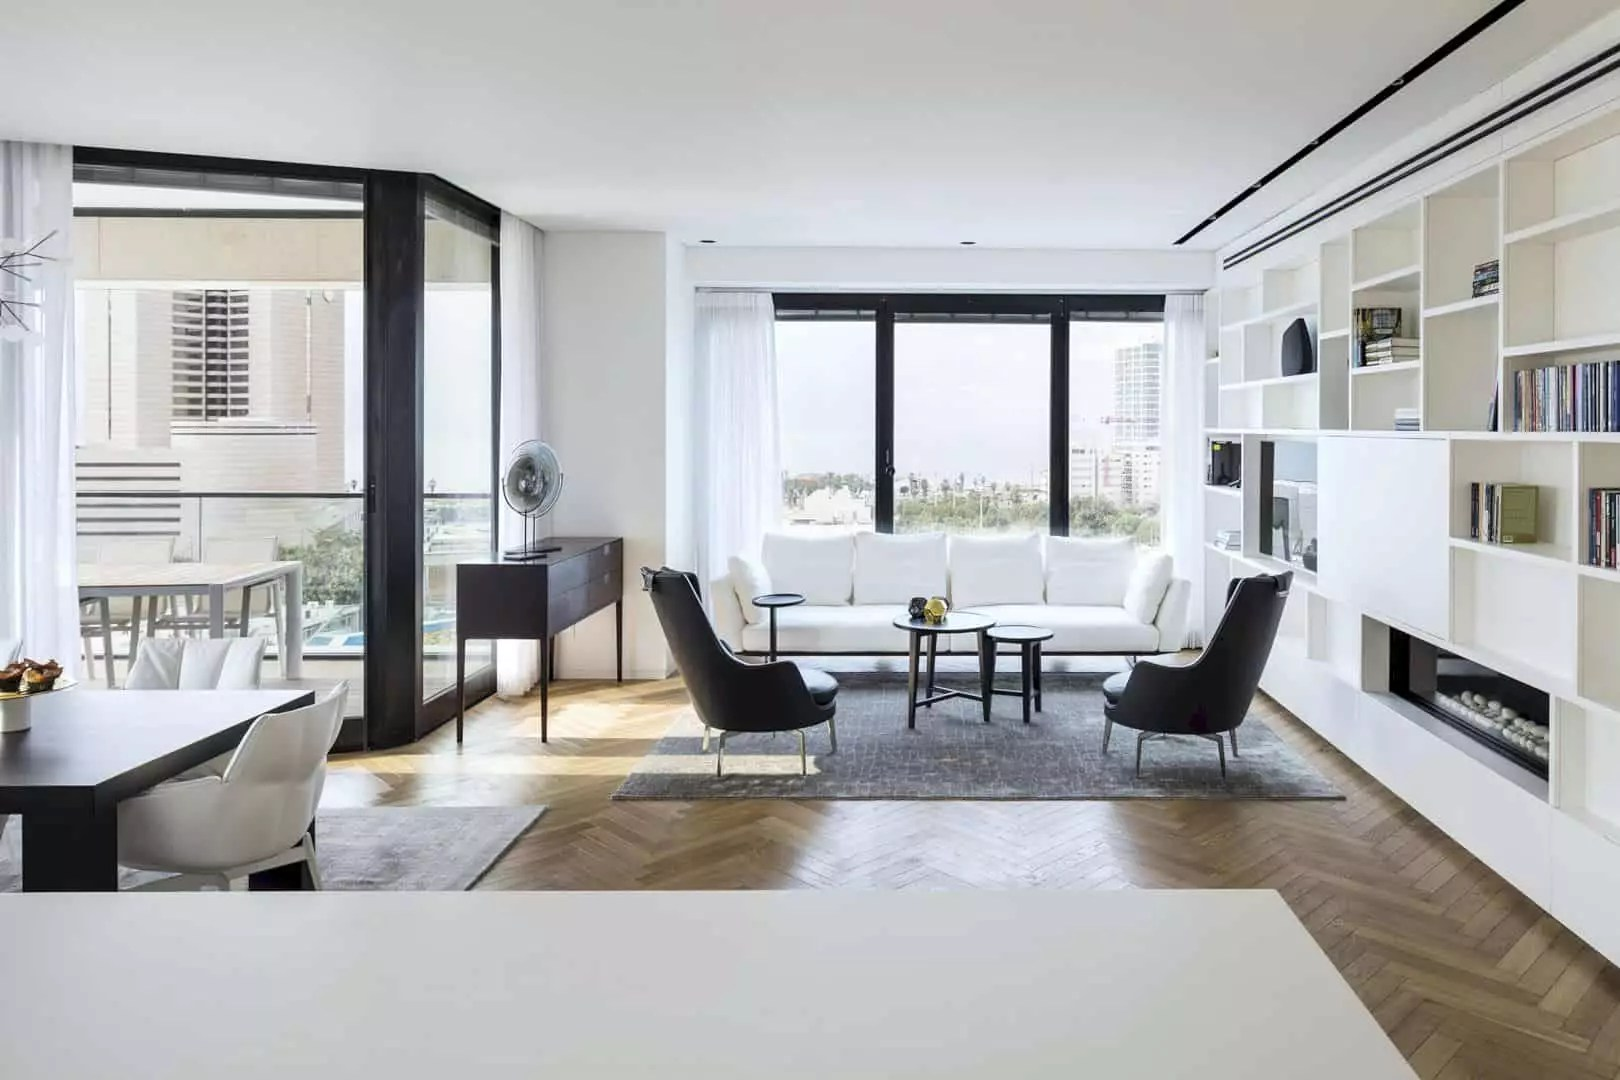 M Apartment: Elegant Interior Design of Apartment with the Feeling of Openness by the View